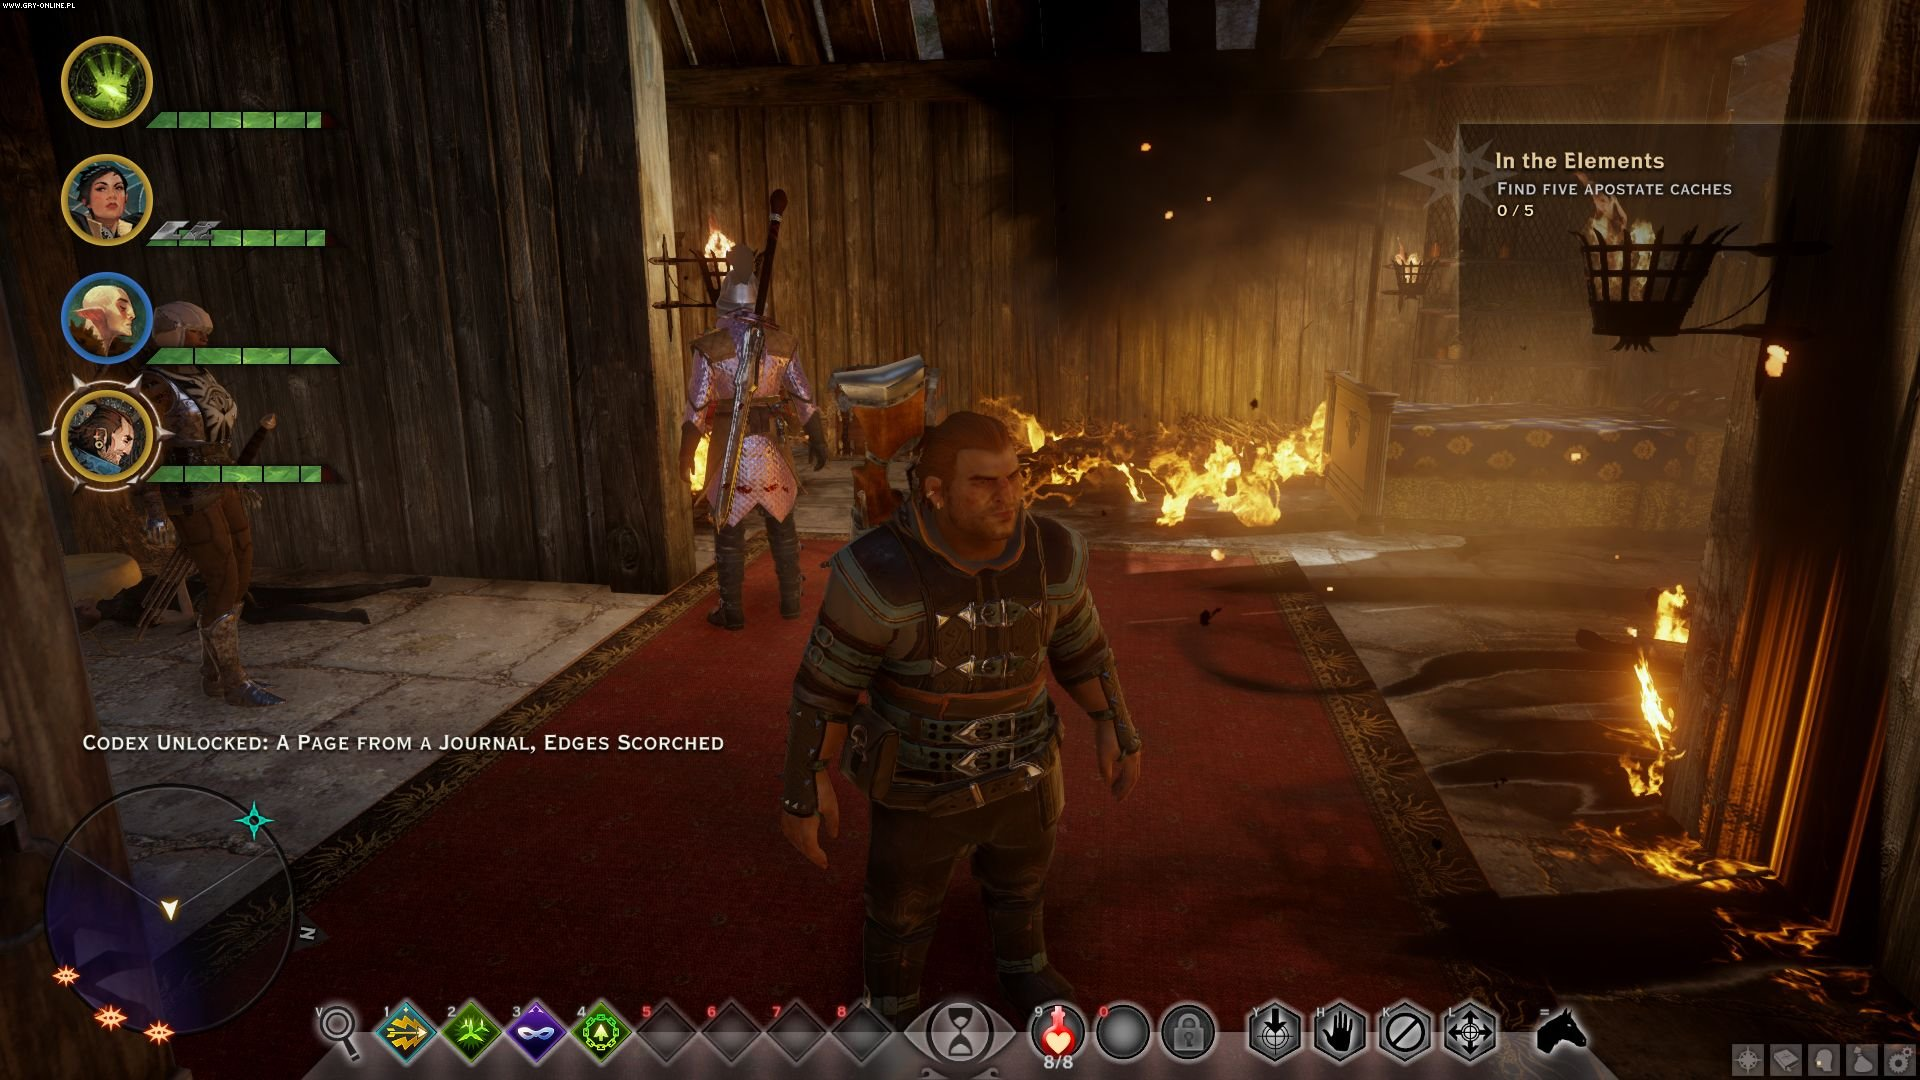 Dragon Age: Inquisition PC, X360, PS3 Games Image 5/225, BioWare Corporation, Electronic Arts Inc.